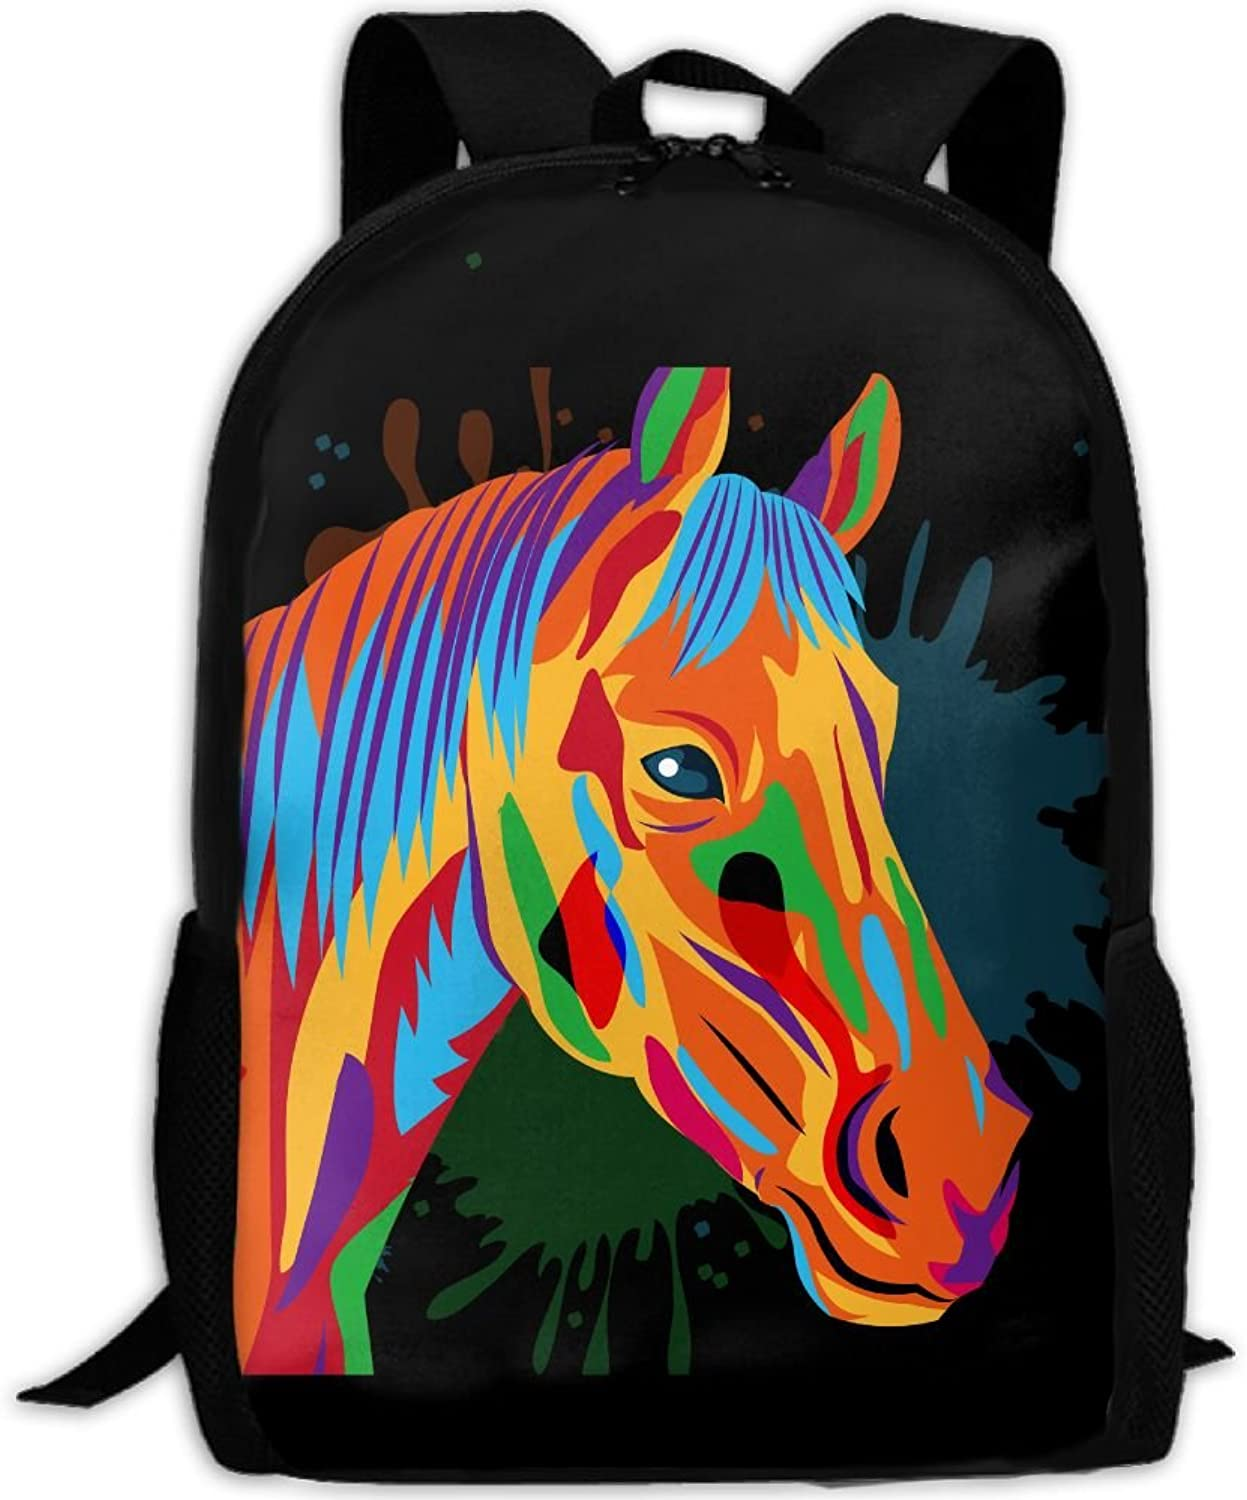 15959378b143 Adult Backpack Abstract Horse Head College Daypack Oxford Unisex ...